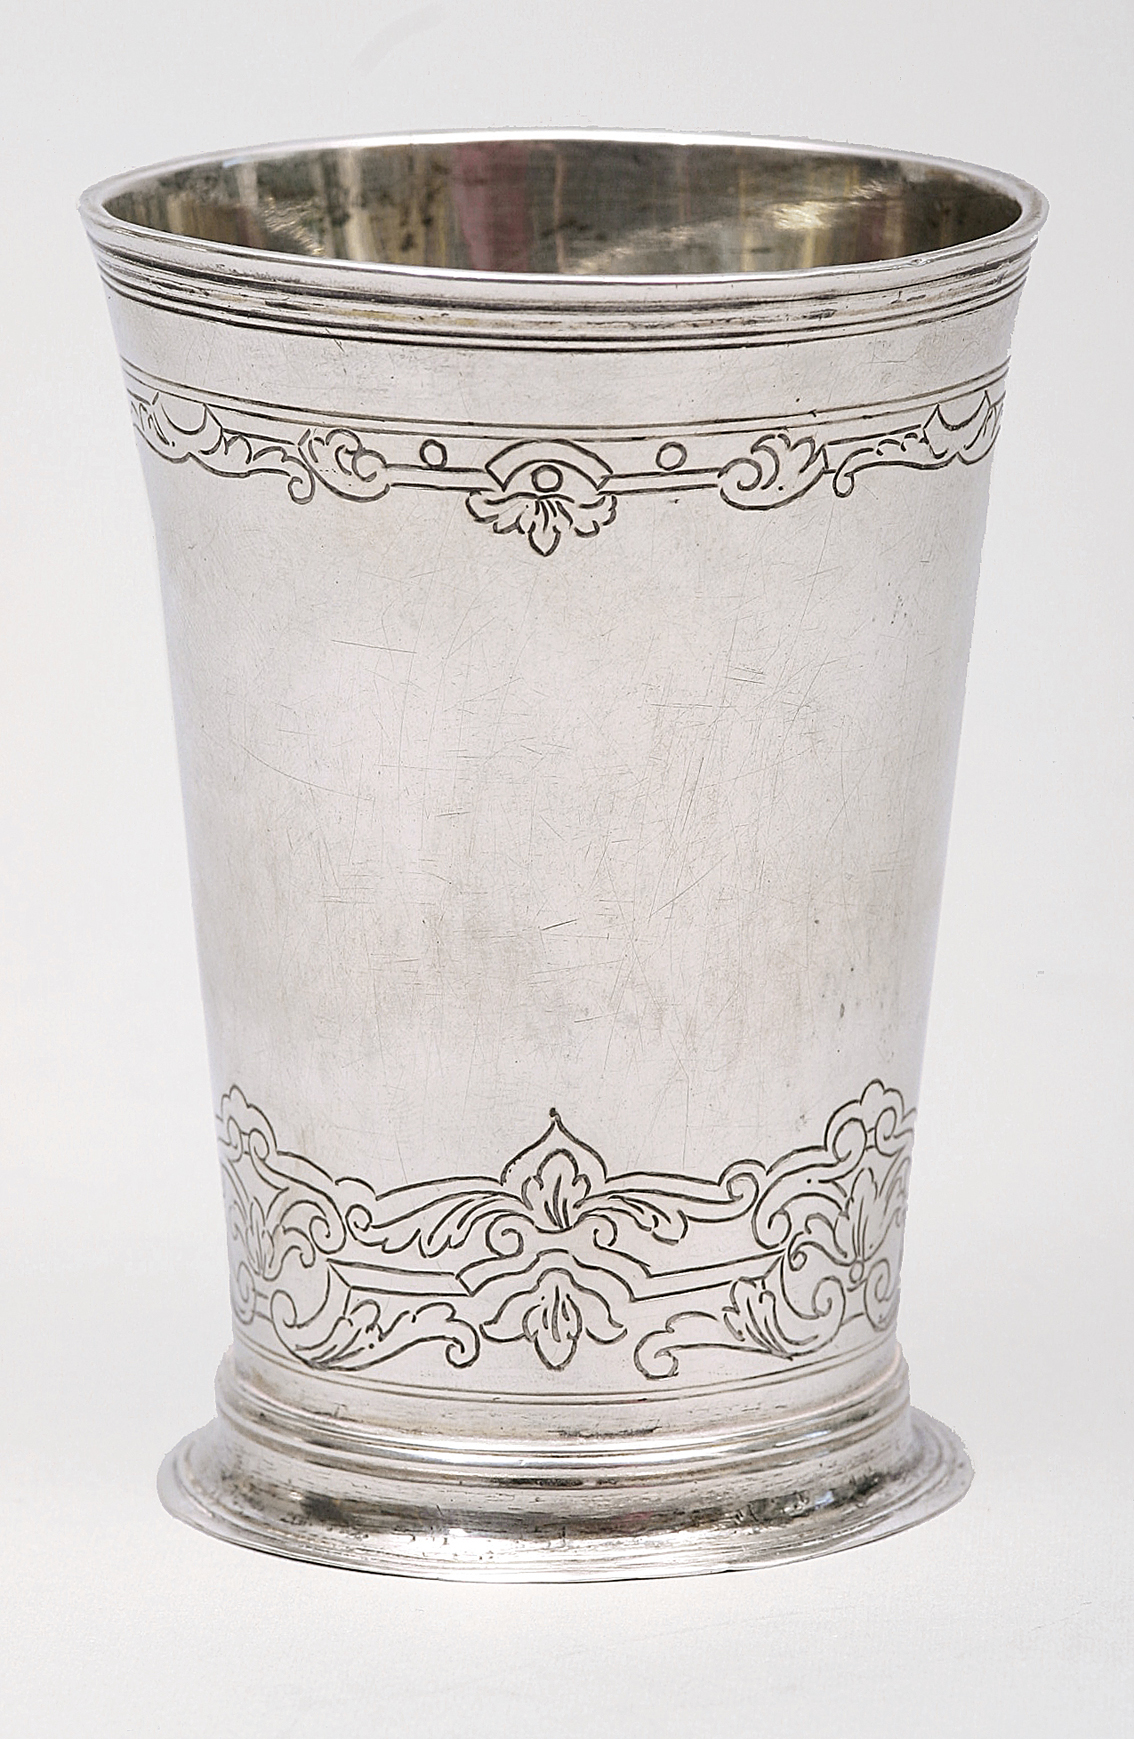 A small 'baroque' cup with fine engravings